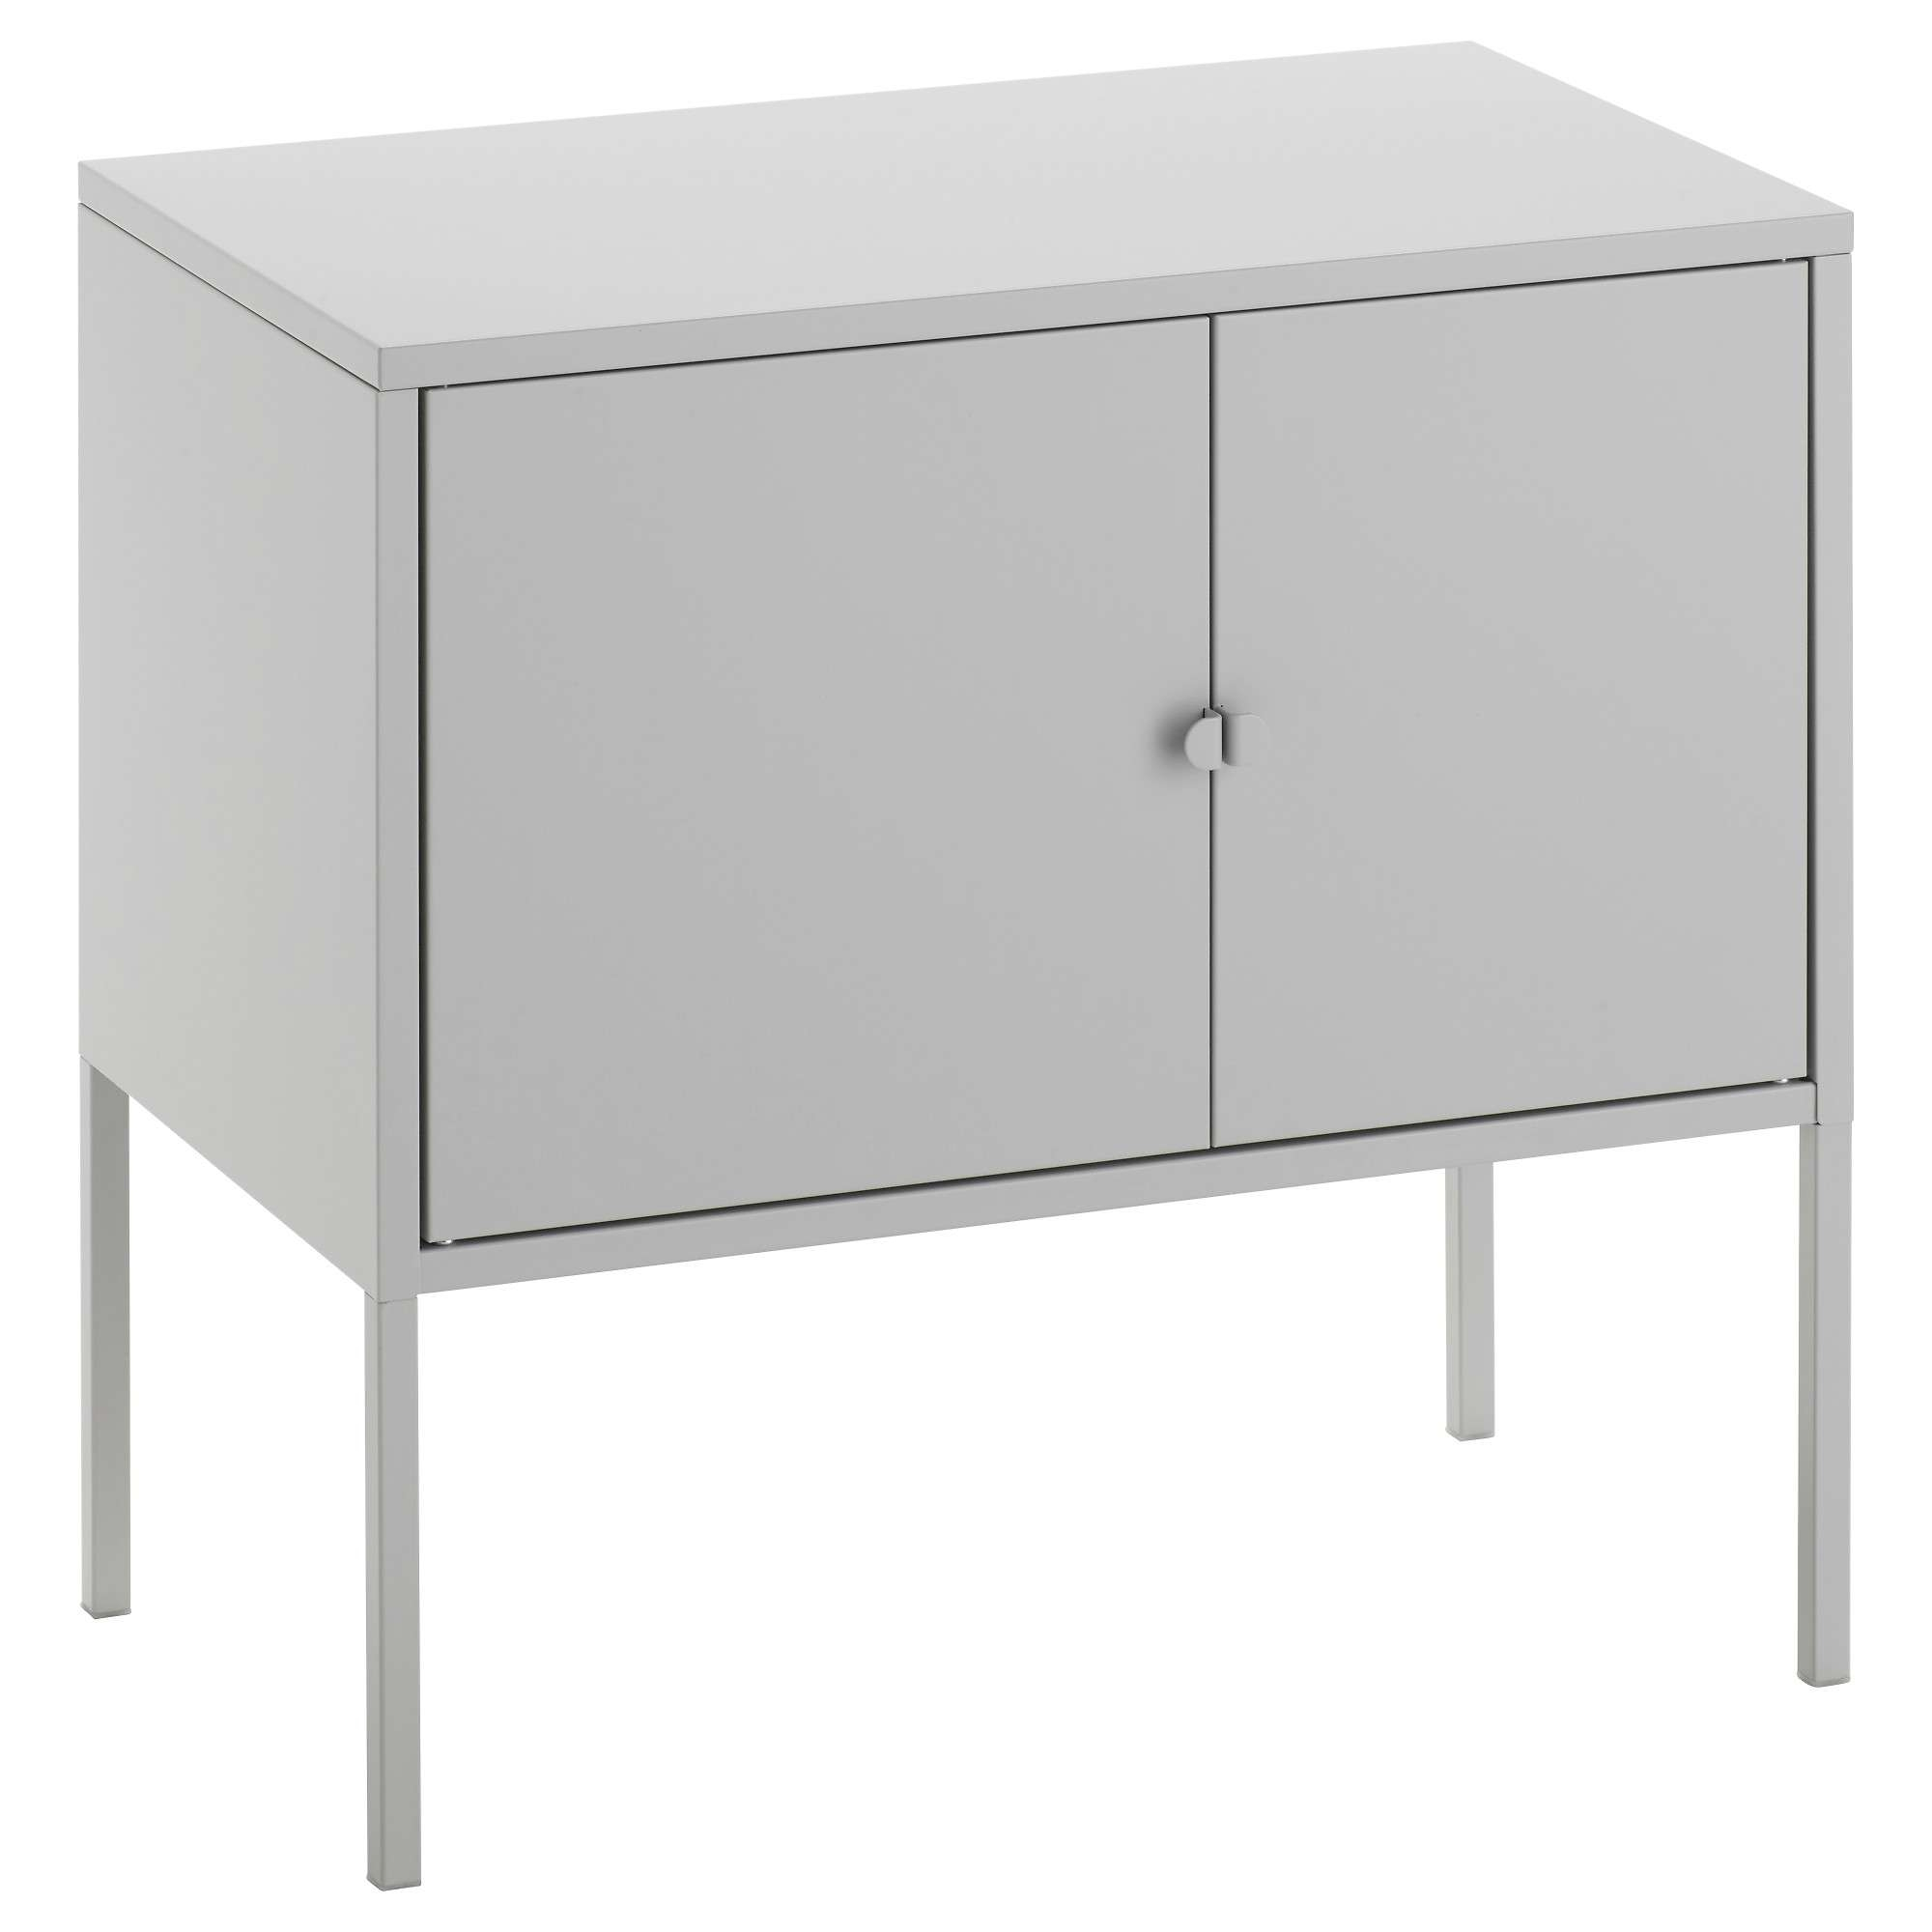 Cabinets & Sideboards – Ikea In Ikea Sideboards (View 17 of 20)